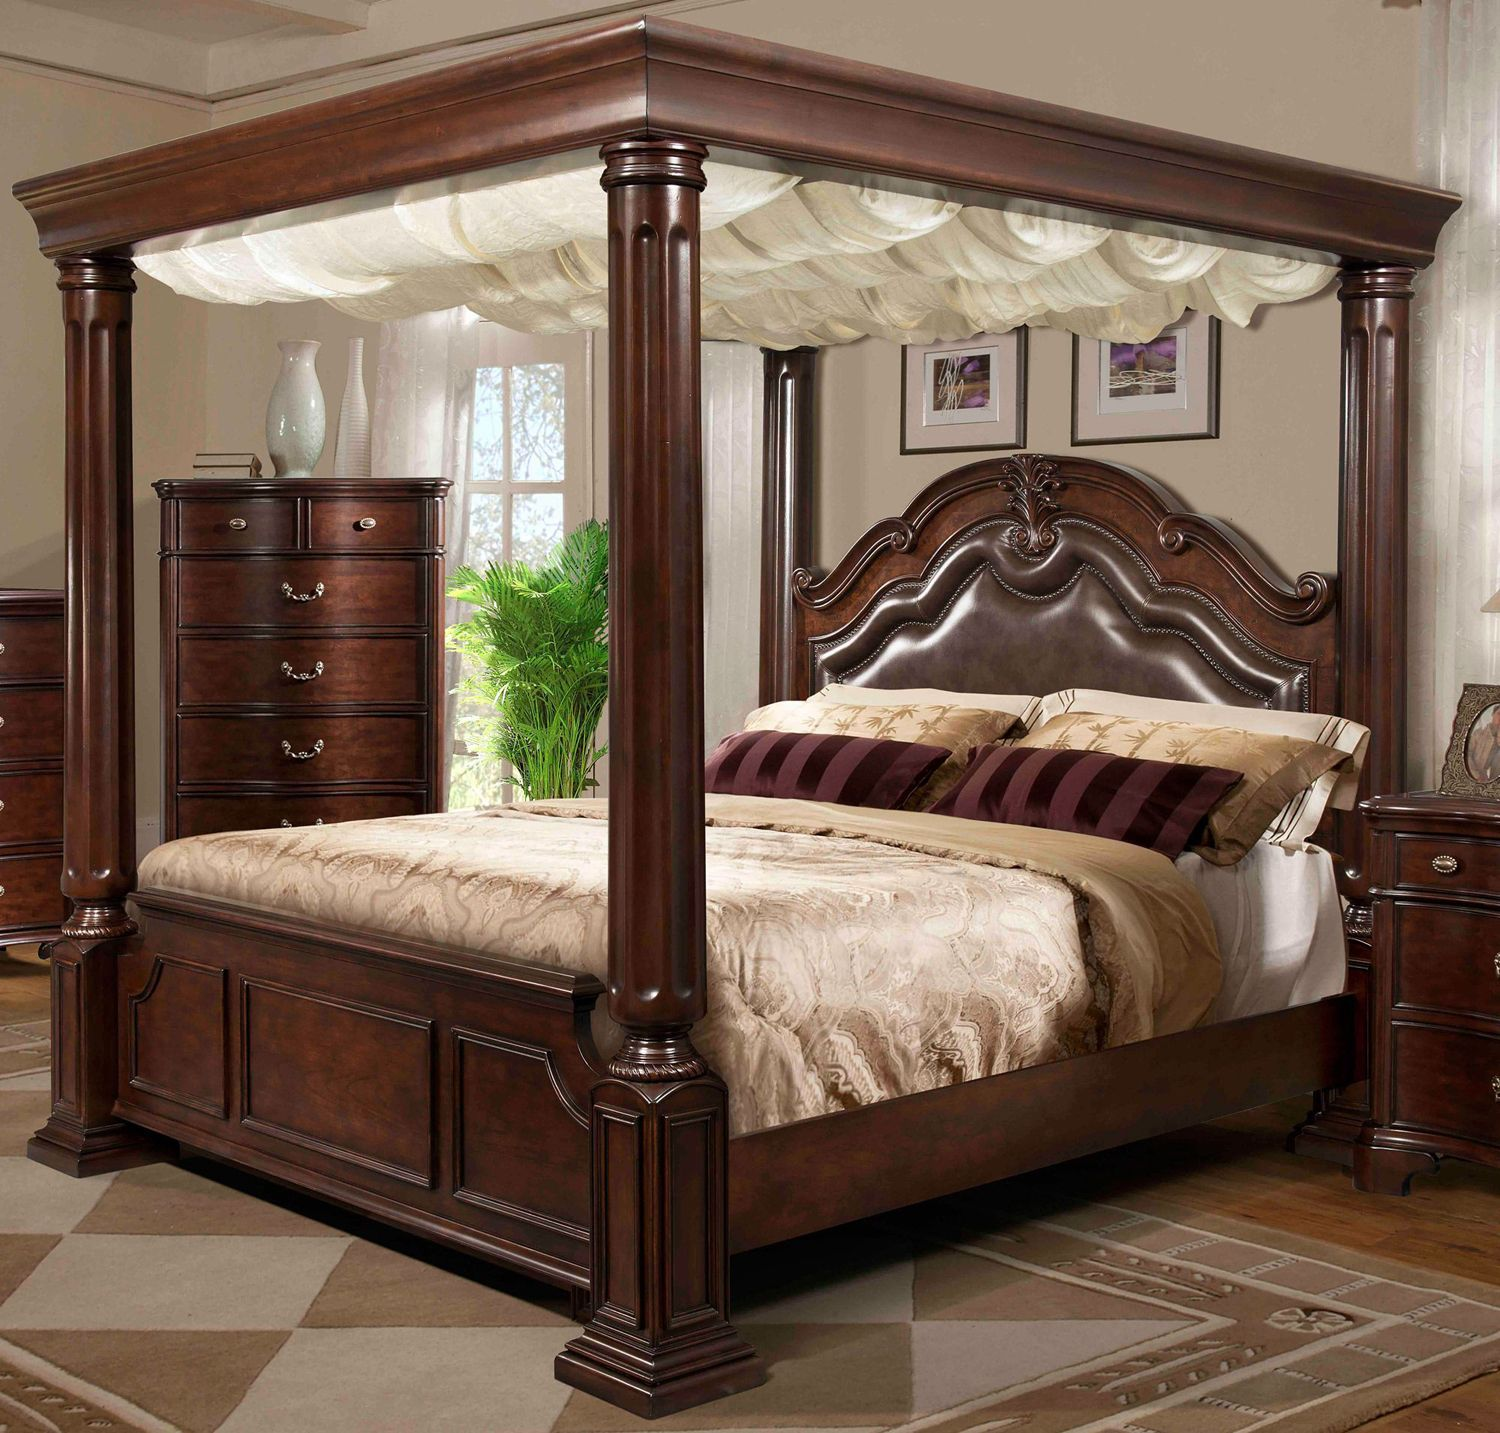 Tabasco Cherry Queen Canopy Bed RC Willey Home